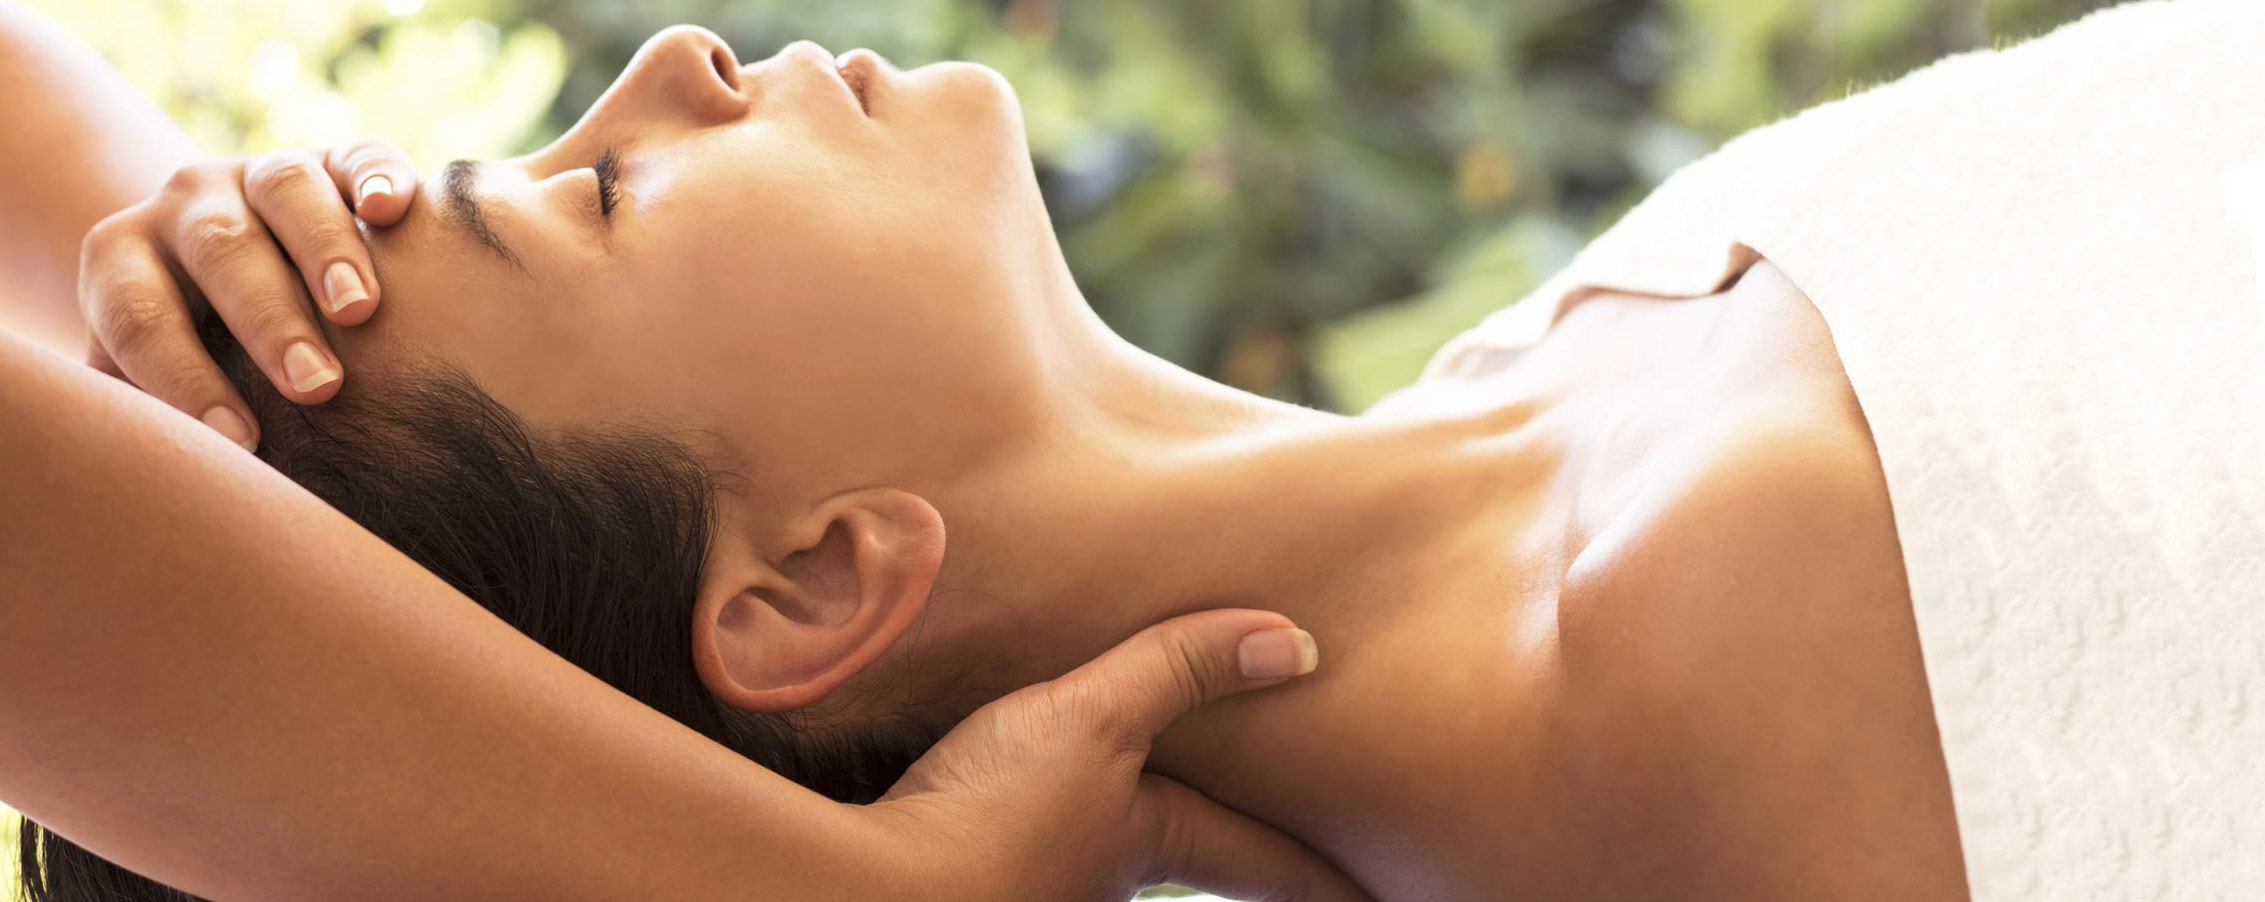 Massage Therapy Training School NJ  Massage Therapy